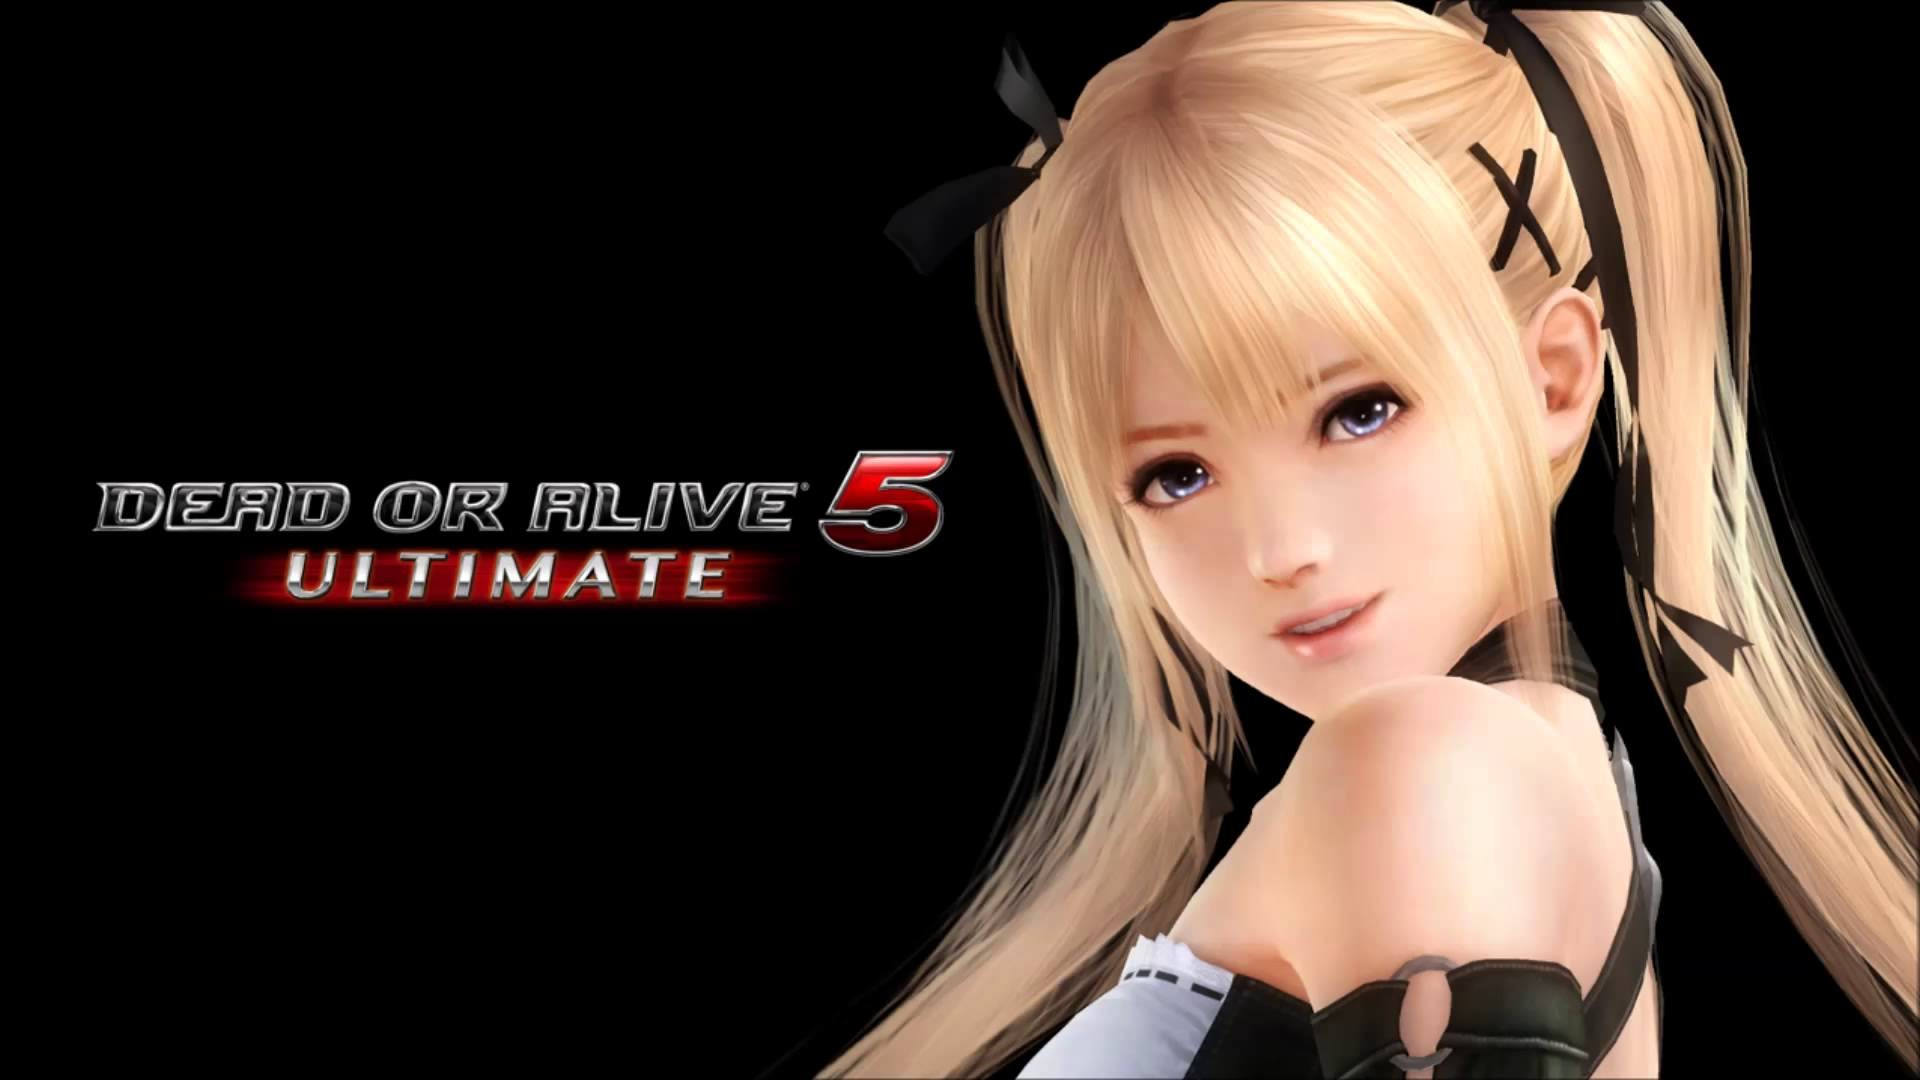 1920x1080 ... Images of Marie Rose Doa Macbook - #SC ...